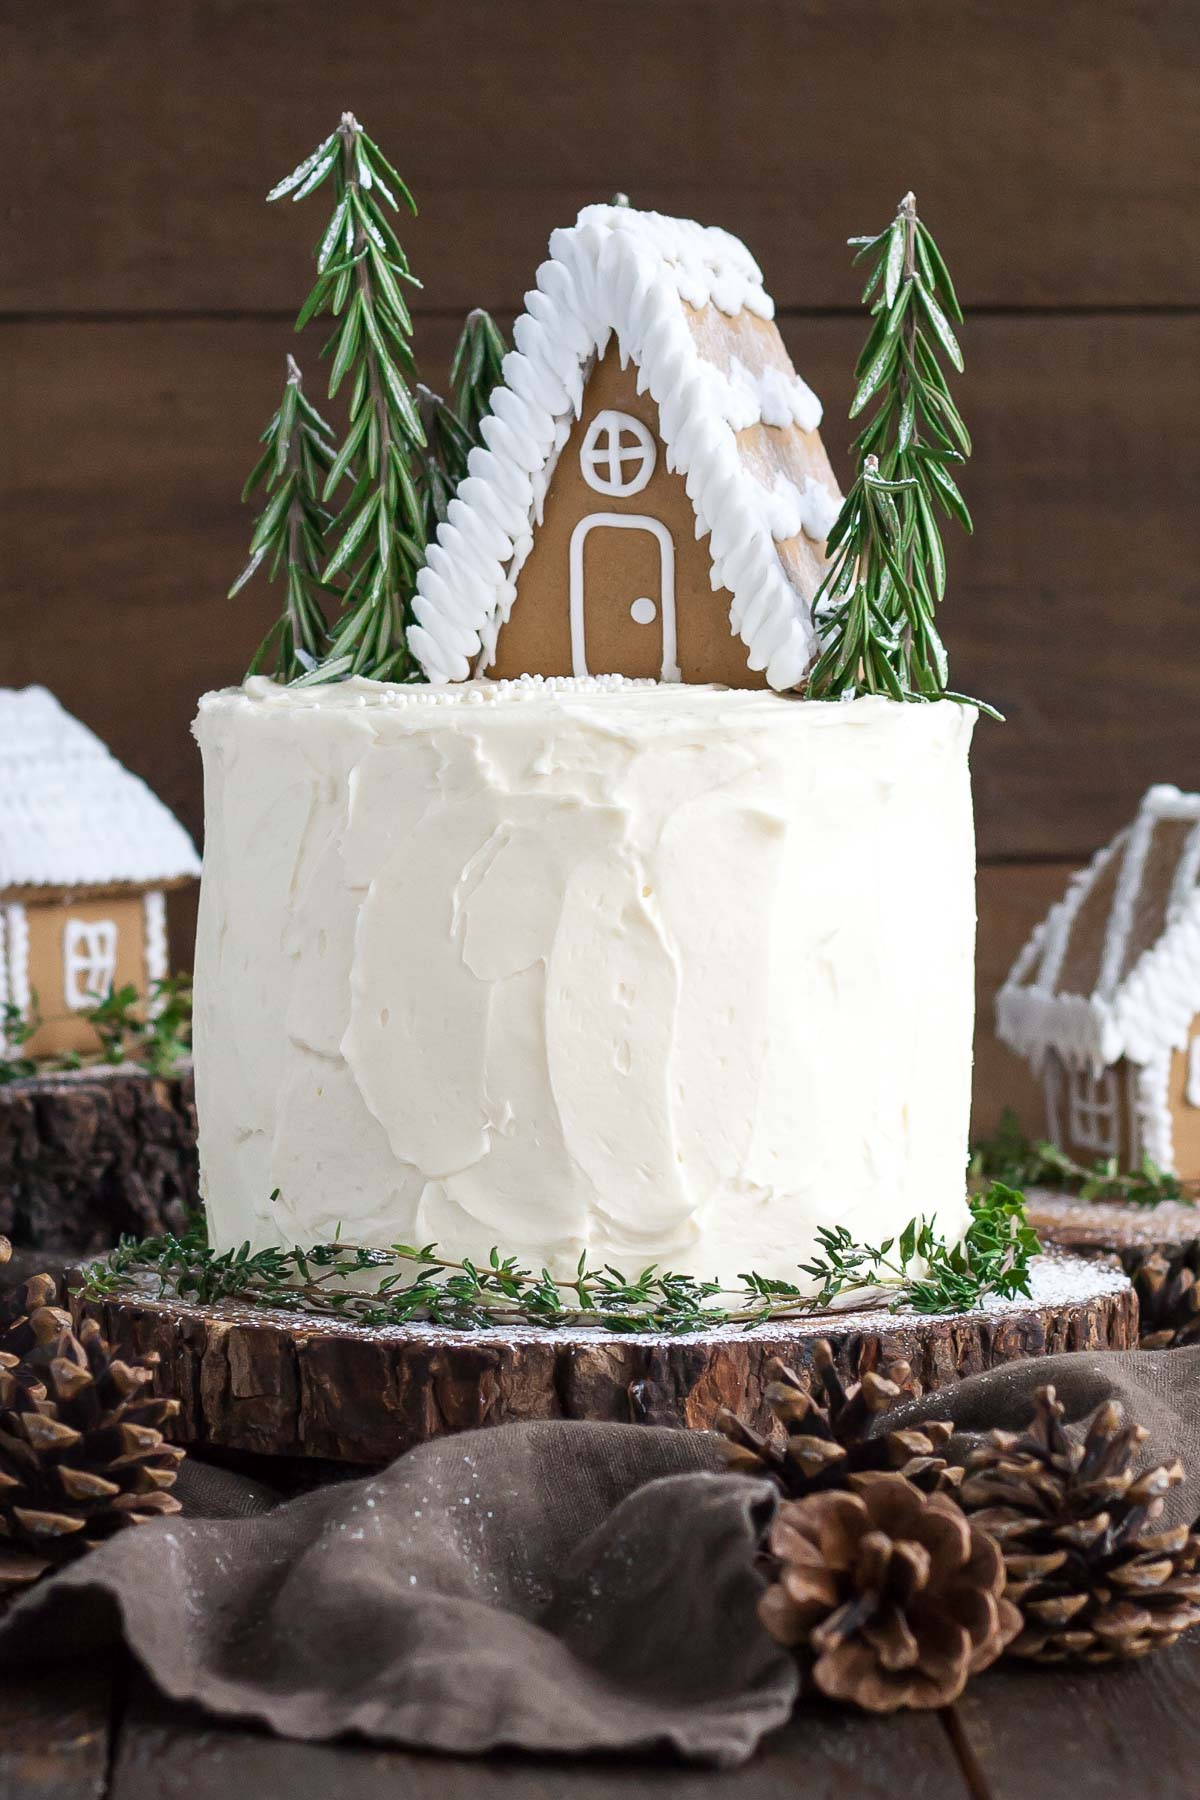 Cake with a gingerbread house on top.